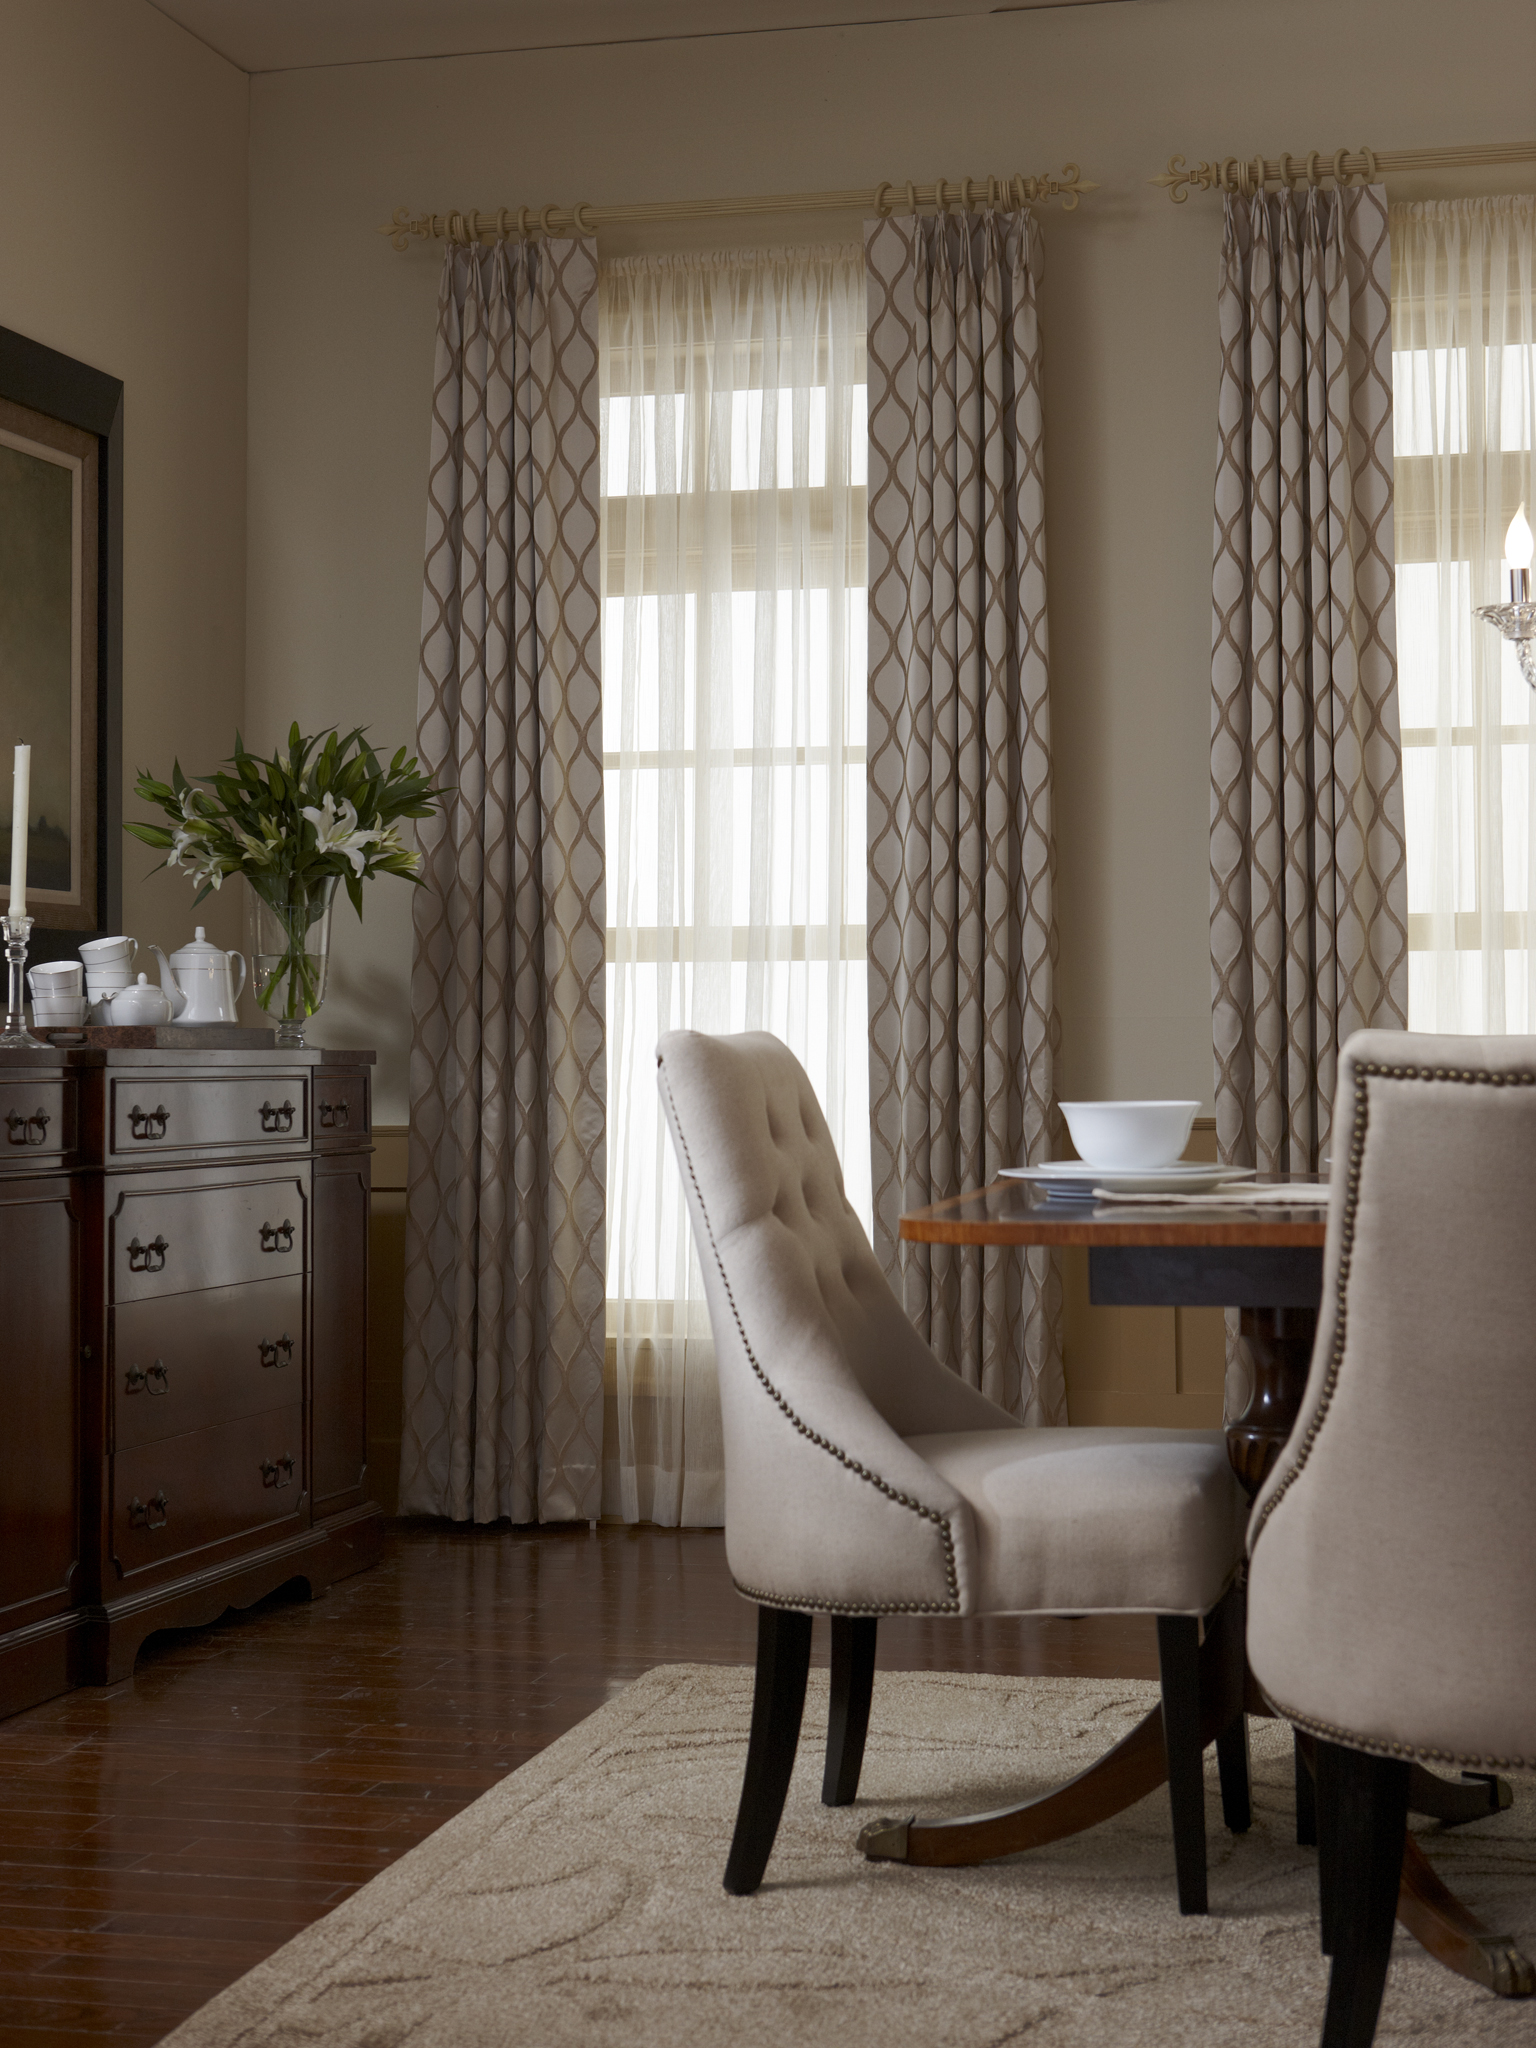 Custom Drapery Images And Curtain Photos Proctor Drapery